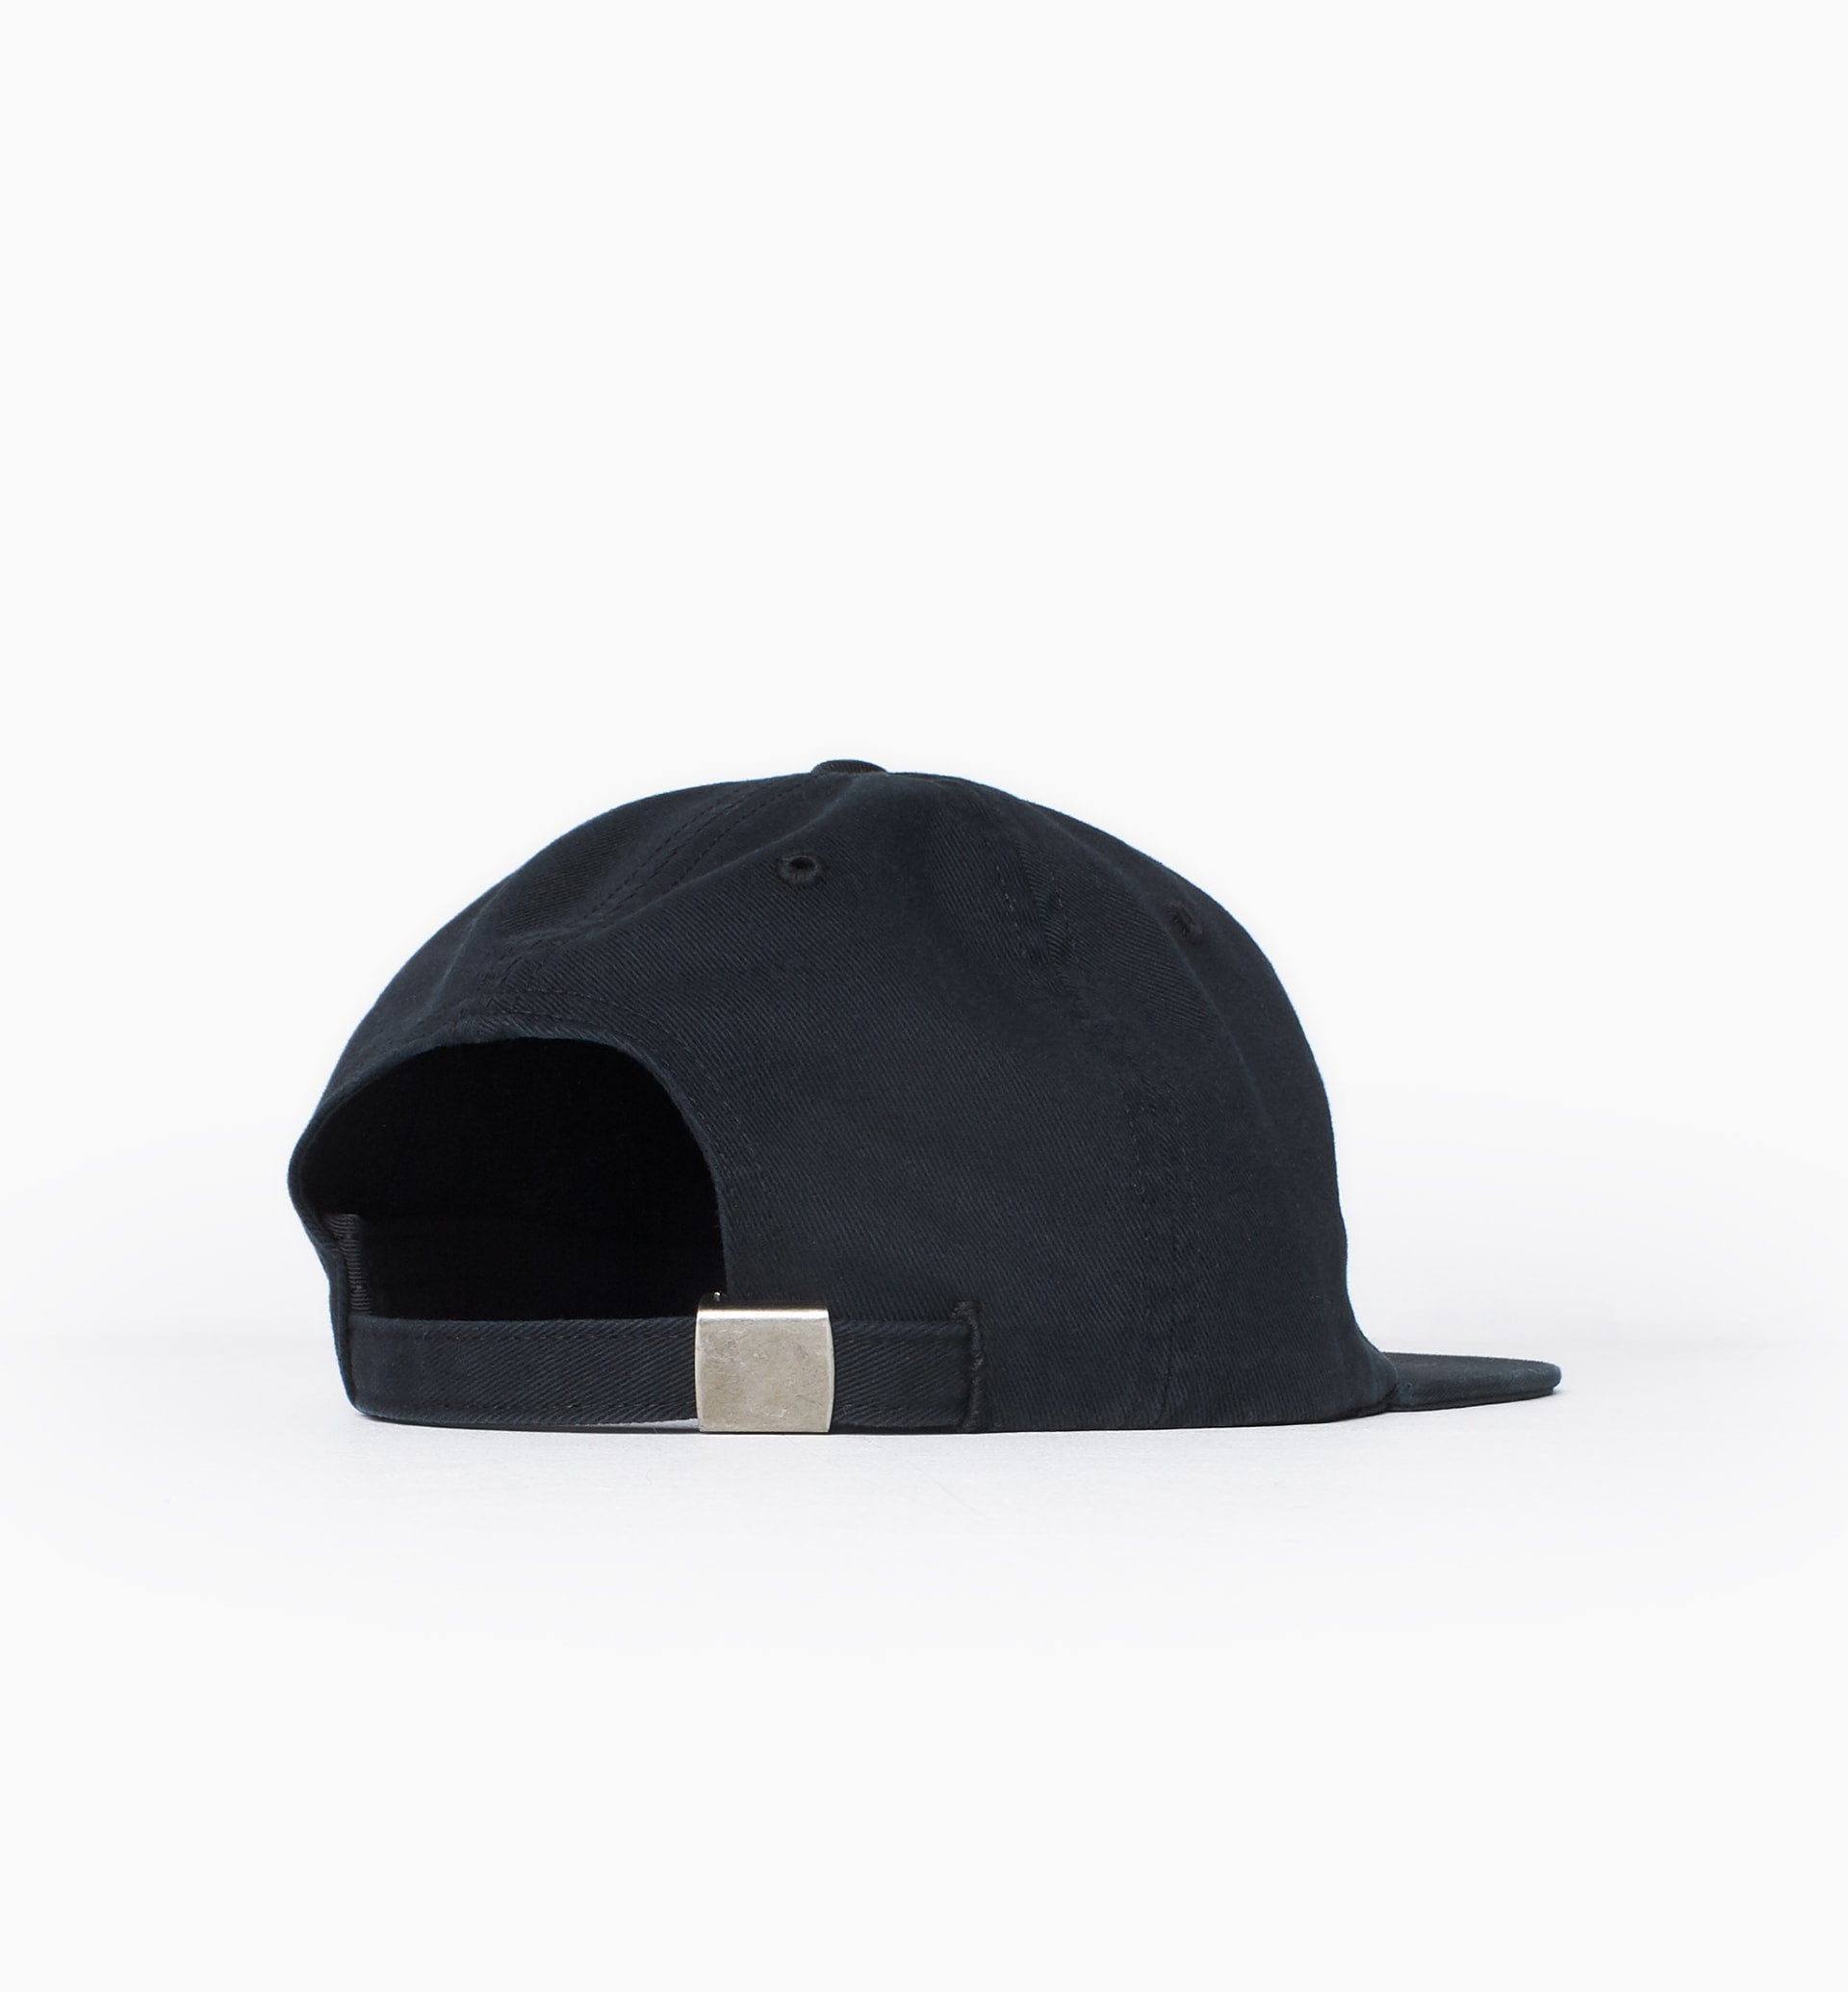 Parra - parra pages 6 panel hat